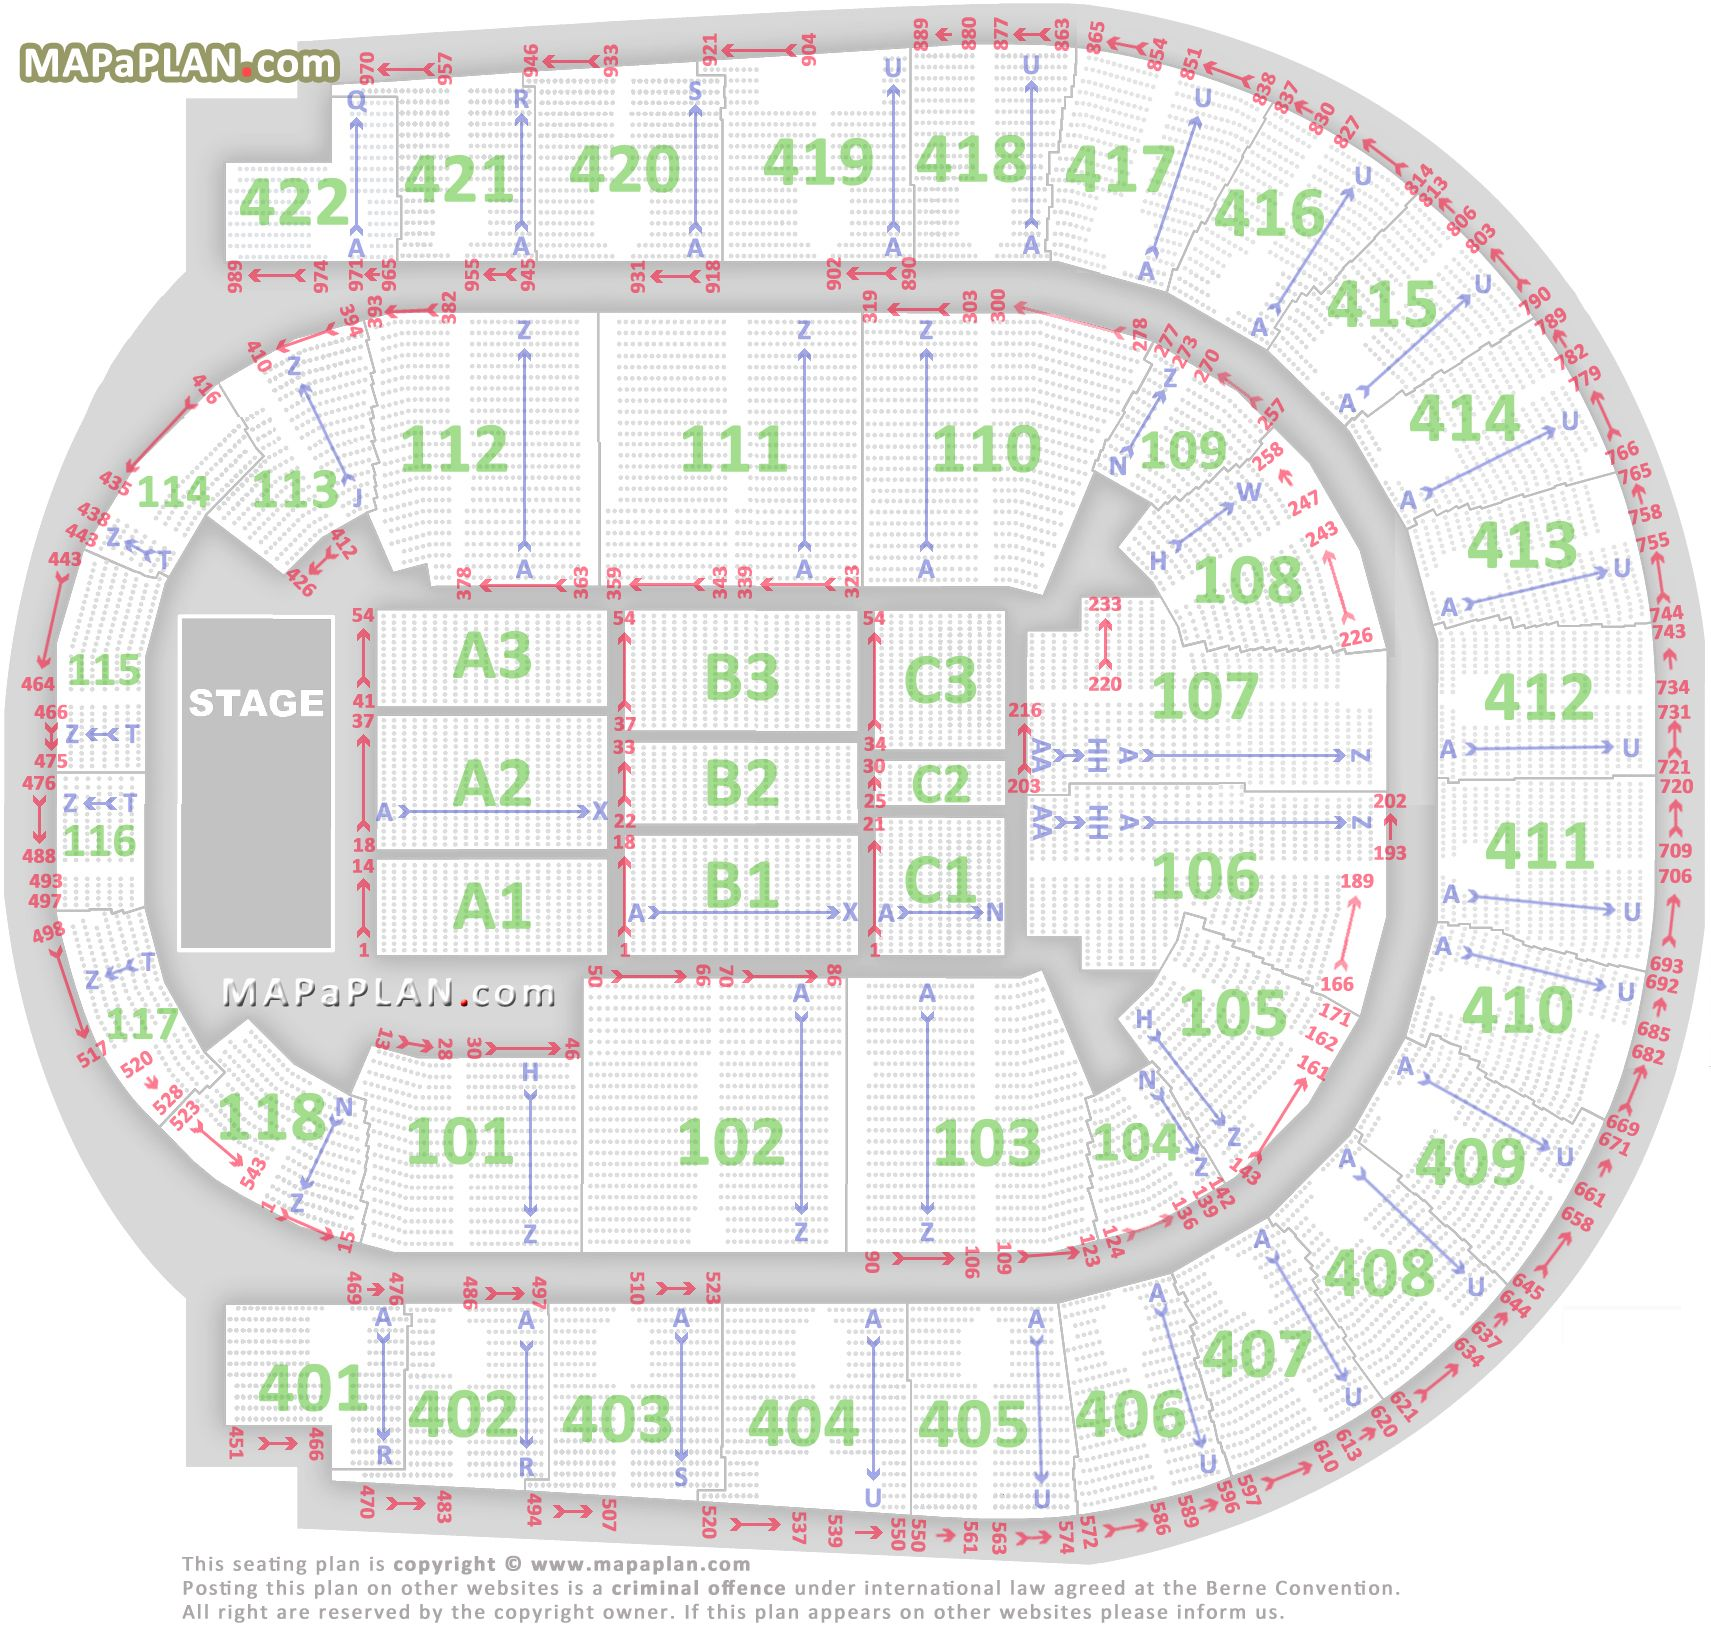 hight resolution of the o2 arena london seating plan detailed seats rows and blocks numbers chart